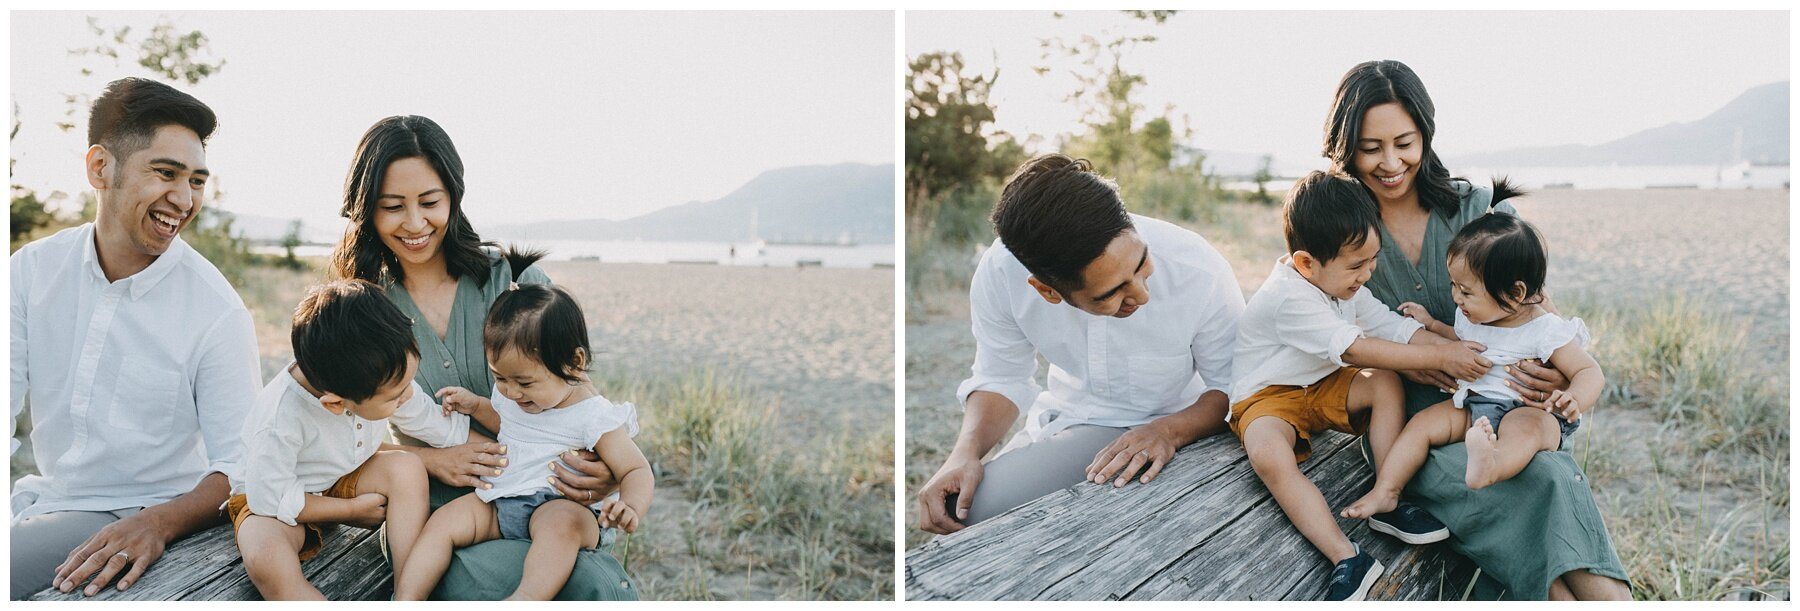 Vancouver Family Photographer || Jericho Beach Vancouver Family Photos_1282.jpg